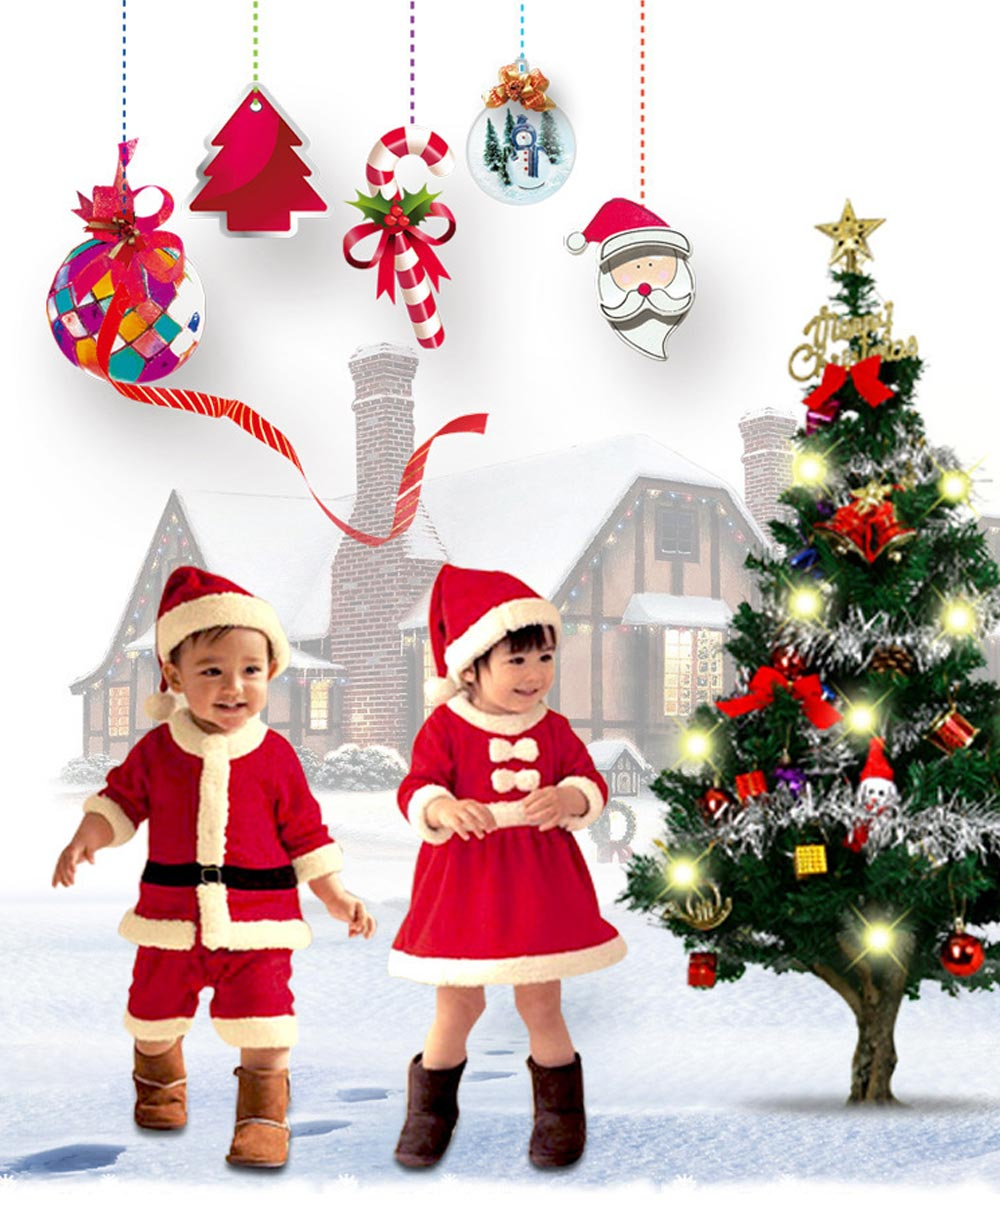 Children Christmas Costume Deluxe plush Christmas Suit for Christmas Party Cosplay Party Family Gathering Stage Performance Christmas Costume Set 8